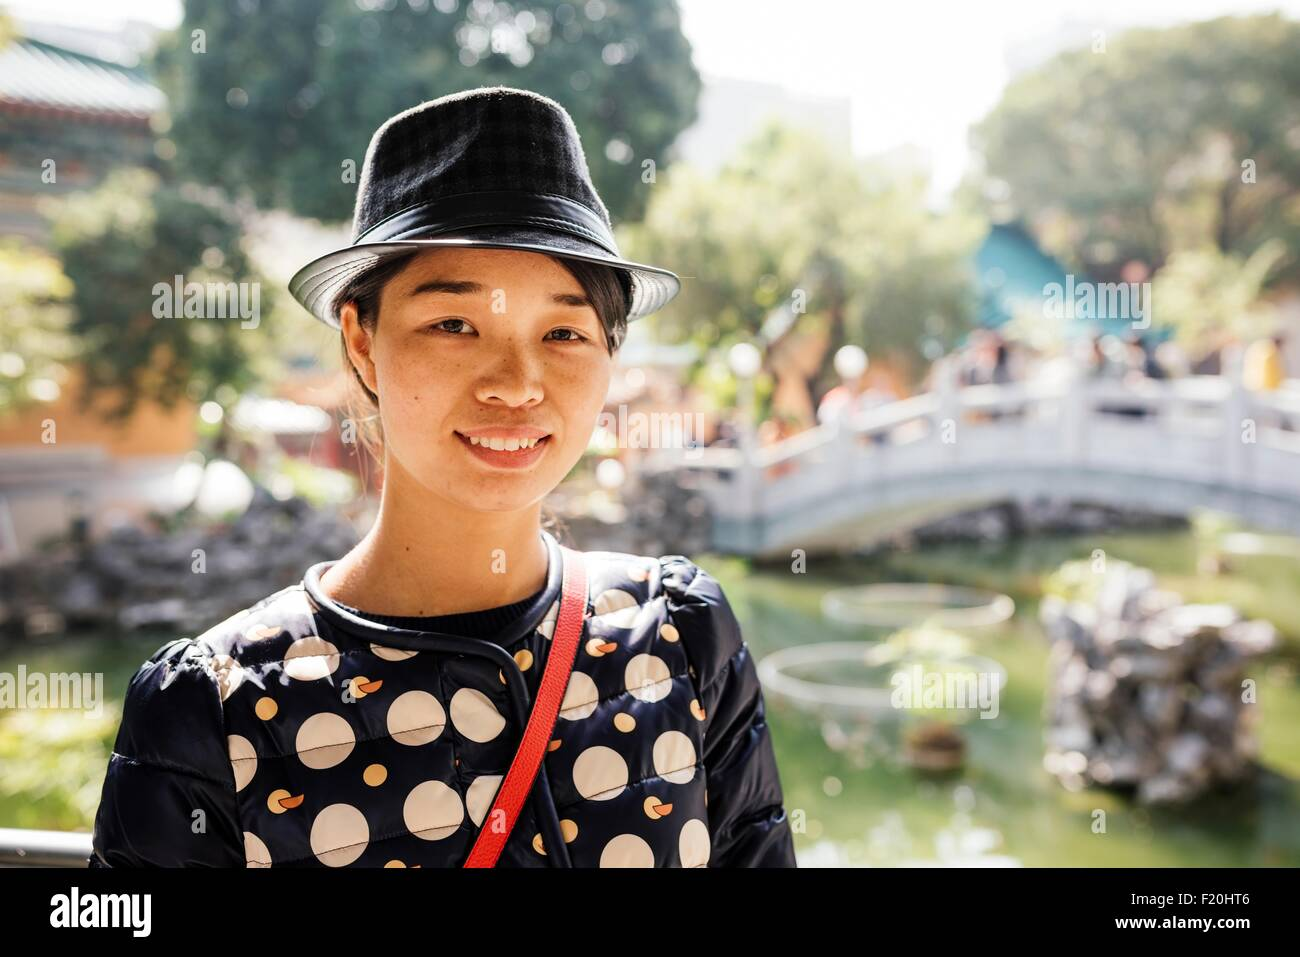 Portrait of young woman wearing hat in front of chinese garden bridge, looking at camera - Stock Image